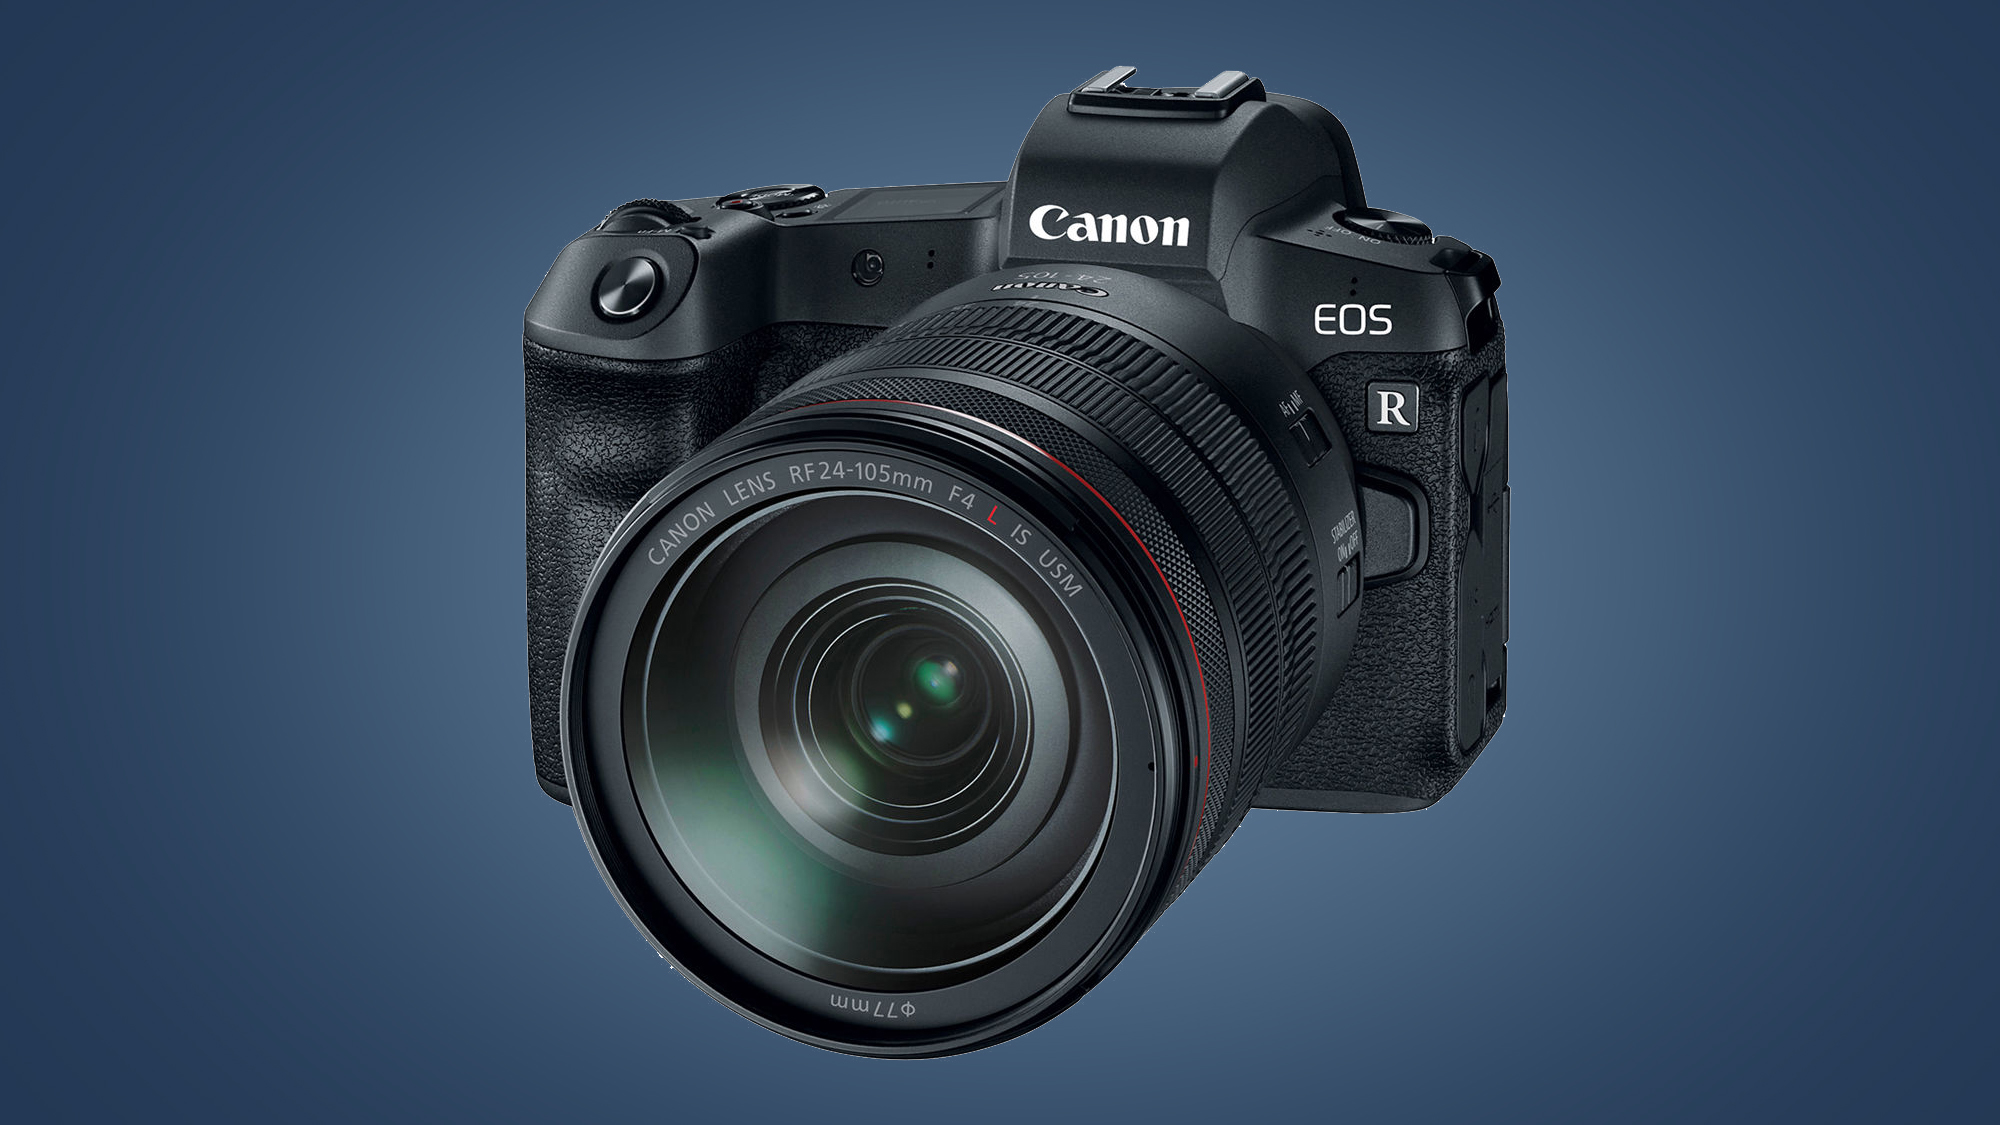 Canon EOS R Mark II rumored to be launching with IBIS in 2020